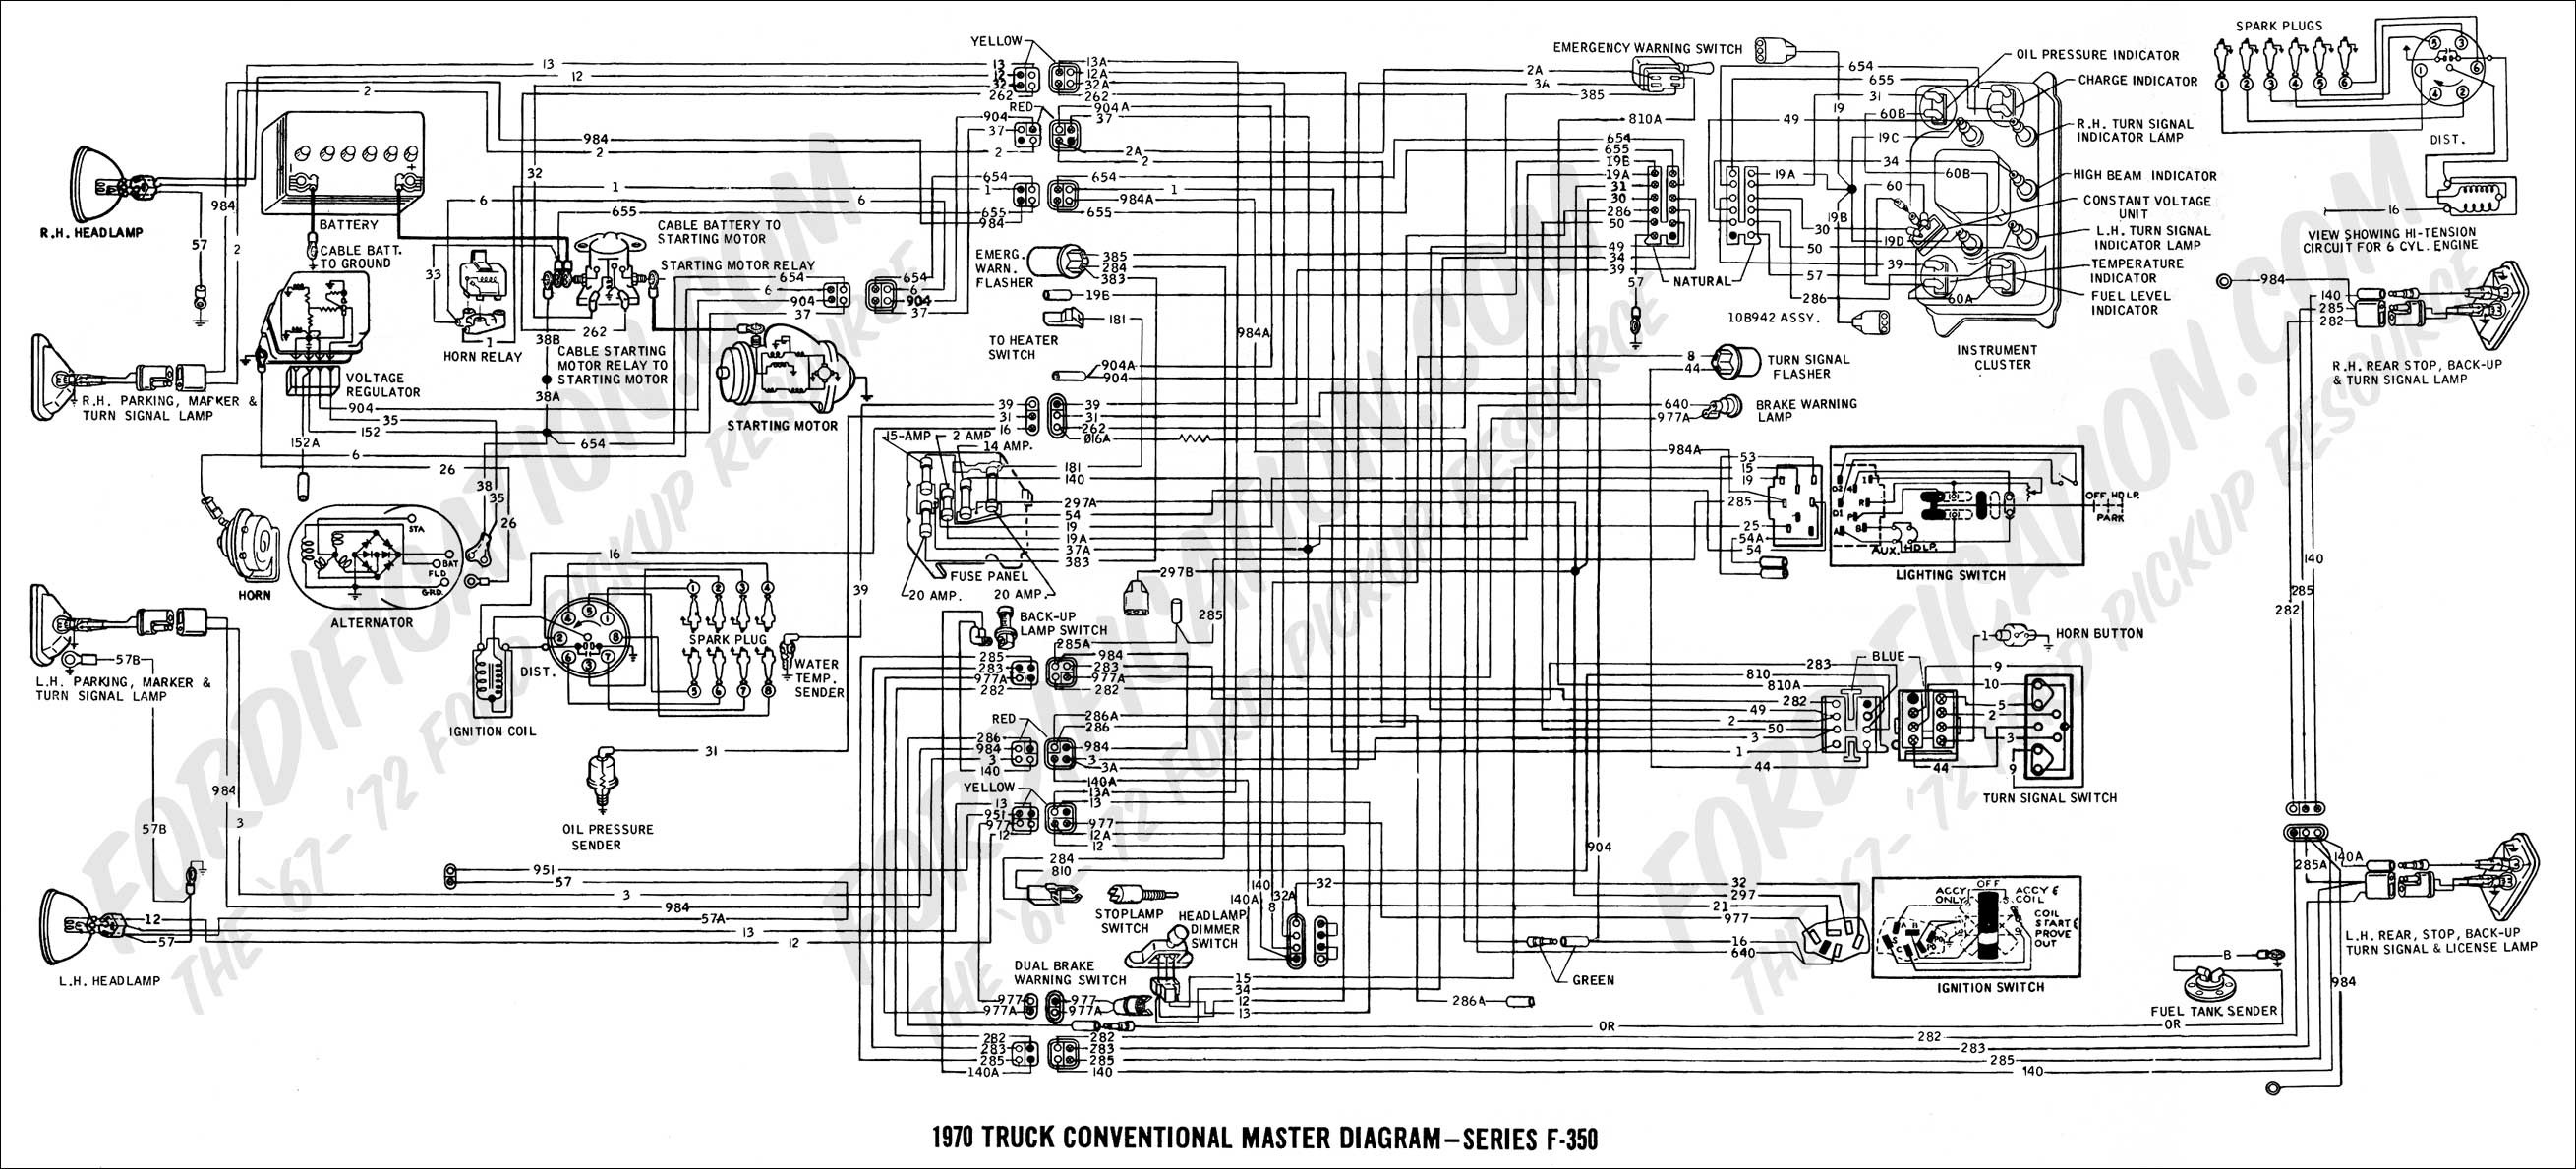 2013 ford Escape Engine Diagram ford Truck Technical Drawings and Schematics Section H Wiring Fair